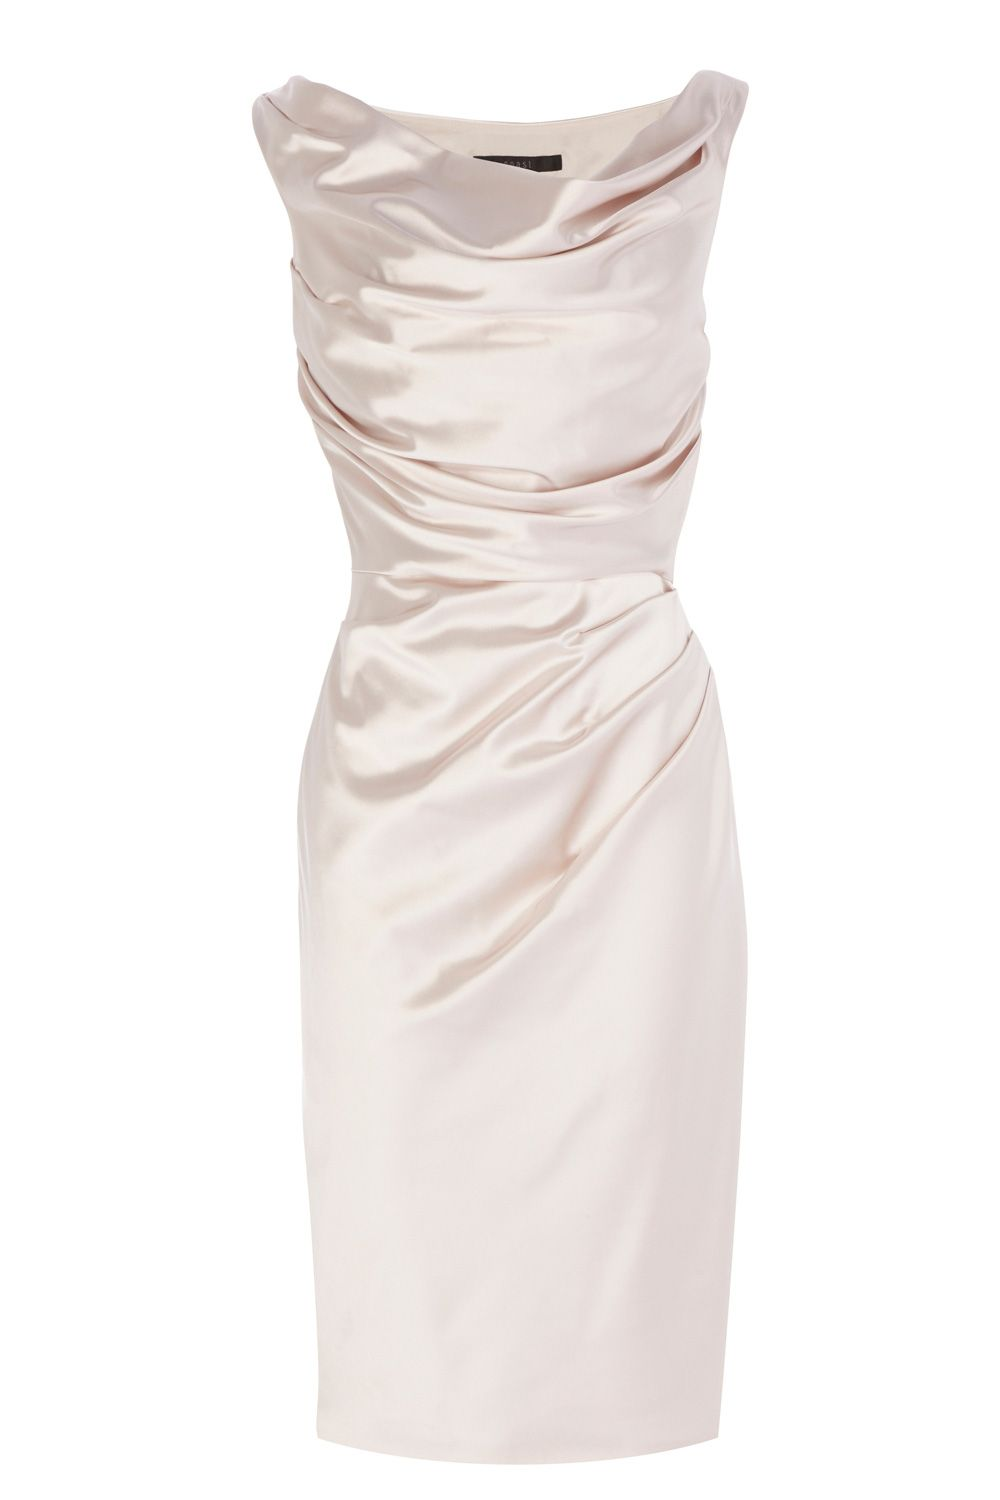 Manda Duchess Satin Dress